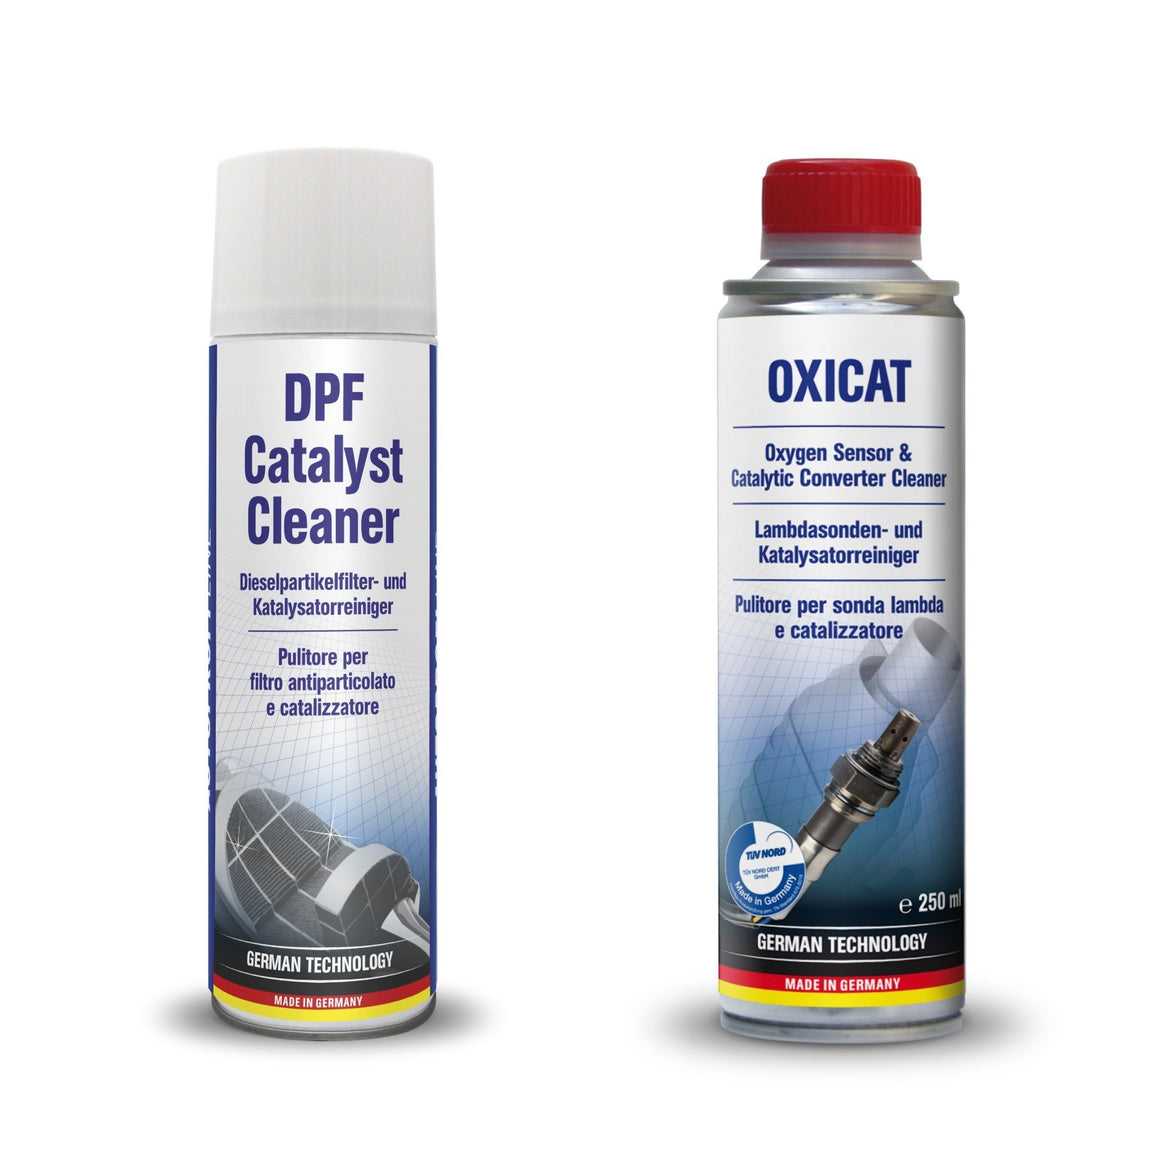 AUTOPROFI DPF / Cat. Cleaner Spray 400ml & OXICAT OXYGEN SENSOR & CAT. CONVERTER CLEANER 250ML - KIT - Just European